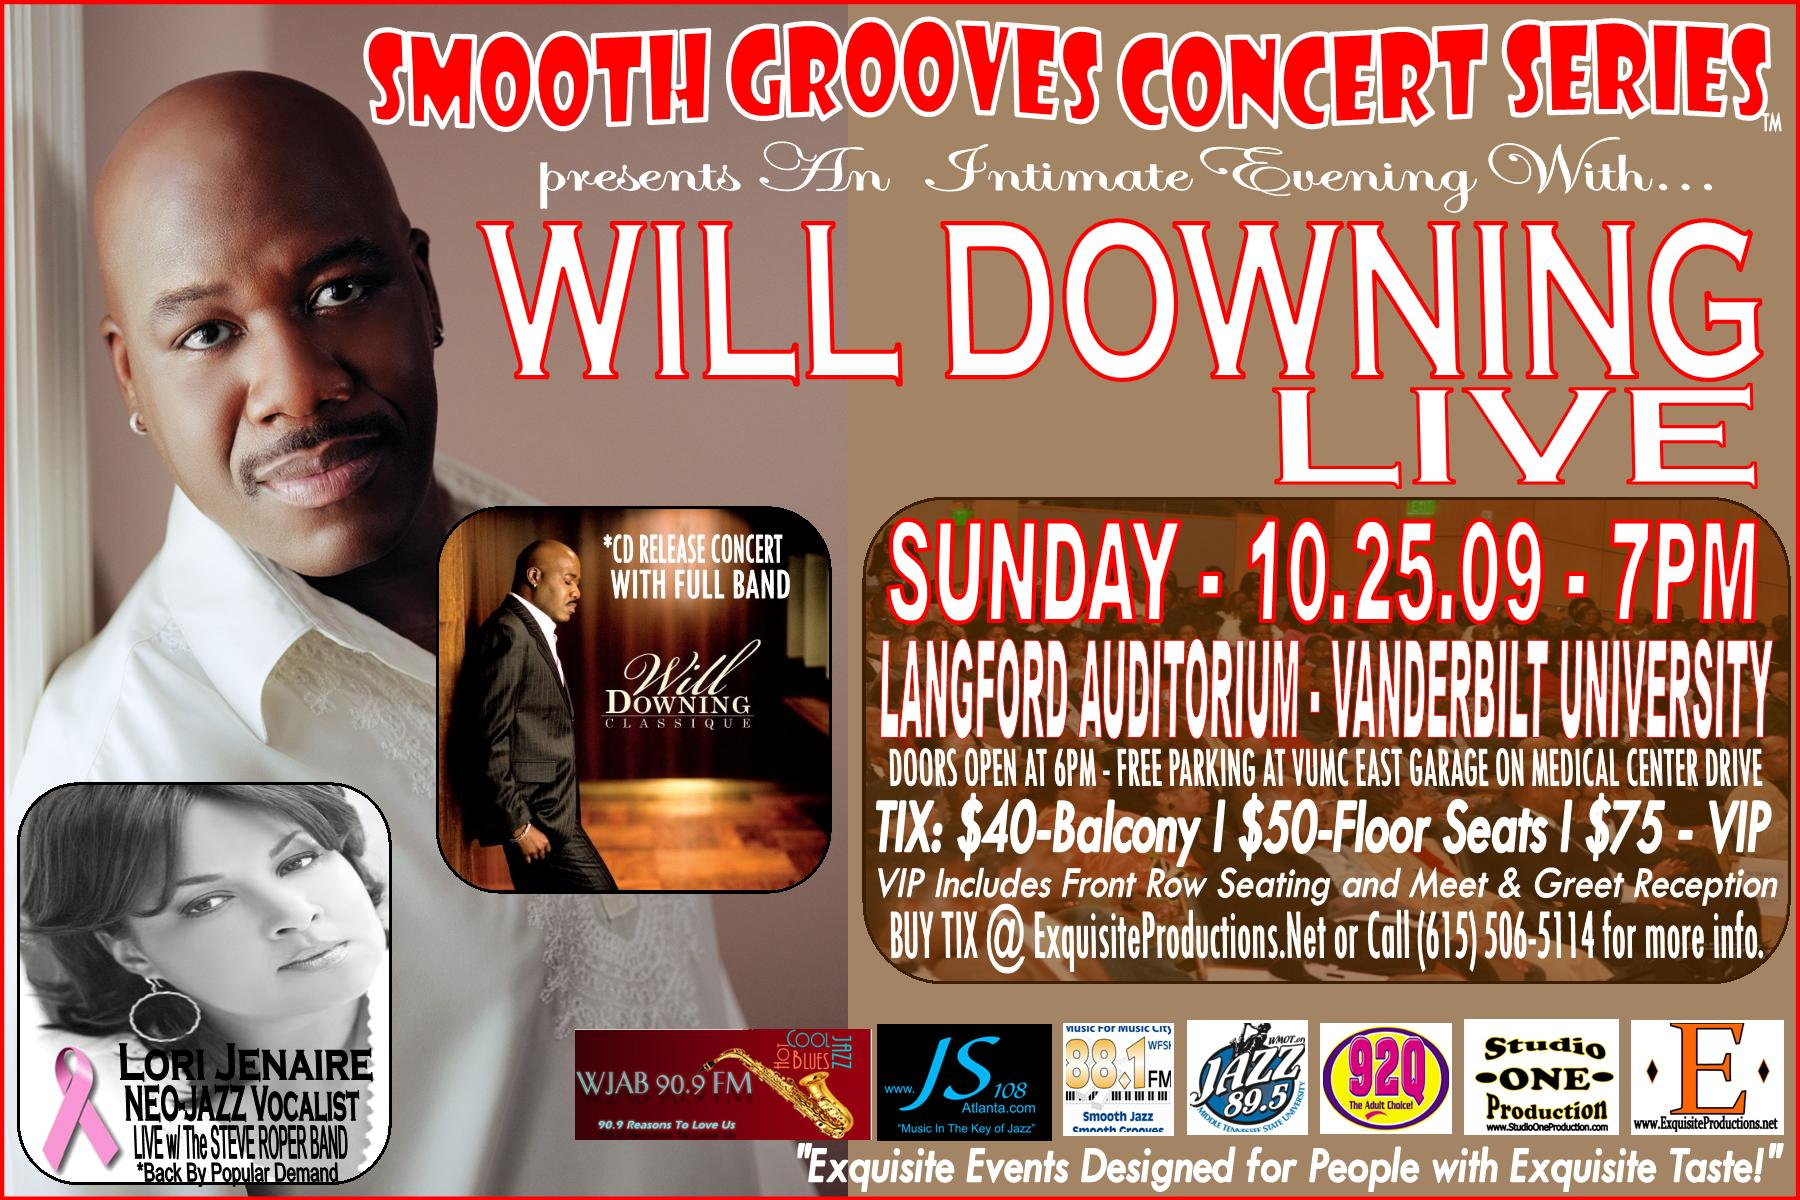 Show 2011 Will Downing